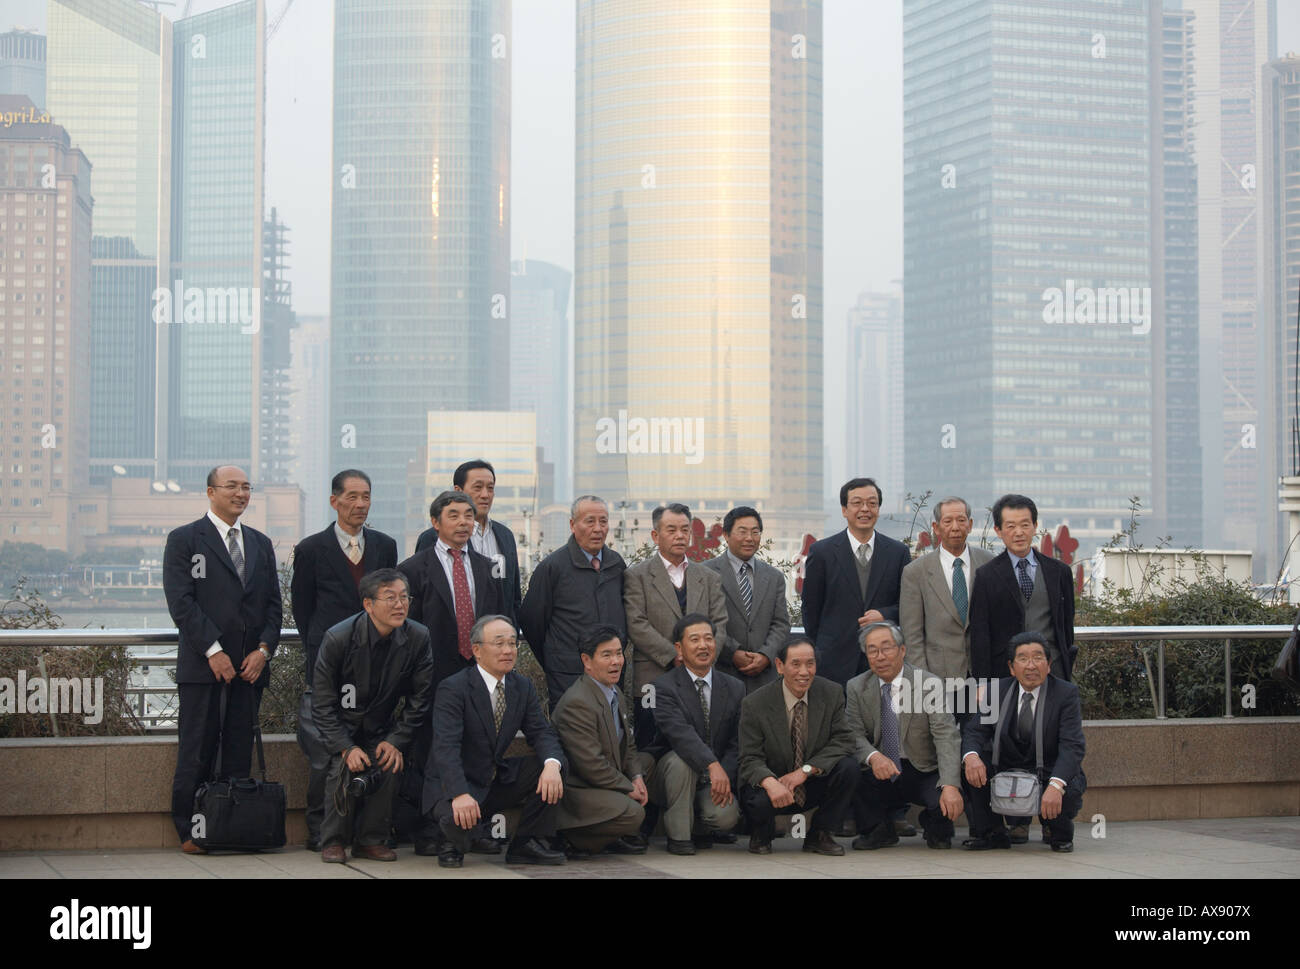 Japanese businessmen posing for a group photo on the Bund with Pudong business district in the background in Shanghai - Stock Image